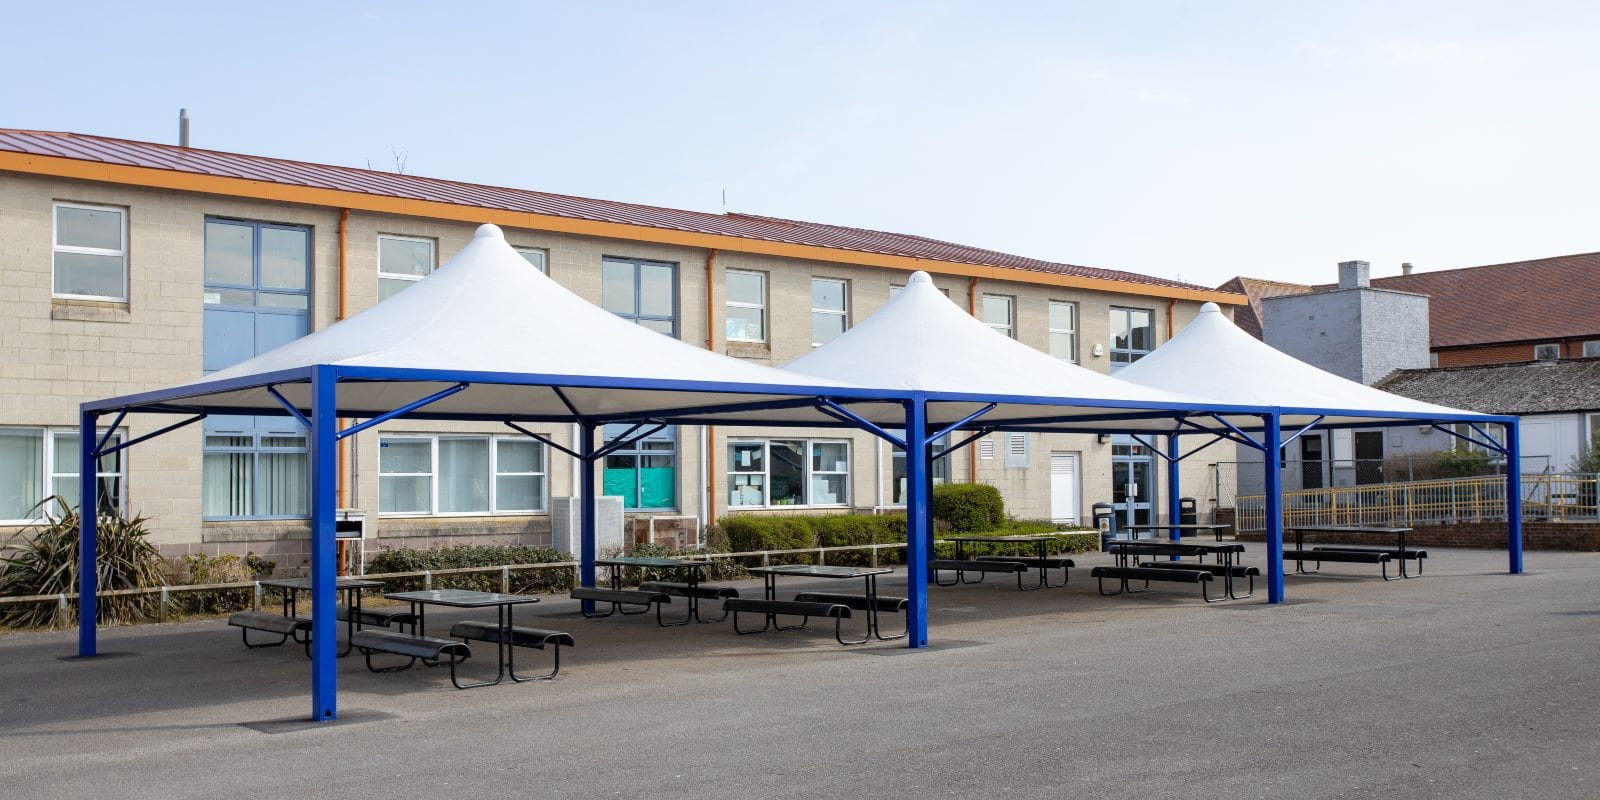 Dining shelters we fitted at The Harvey Grammar School